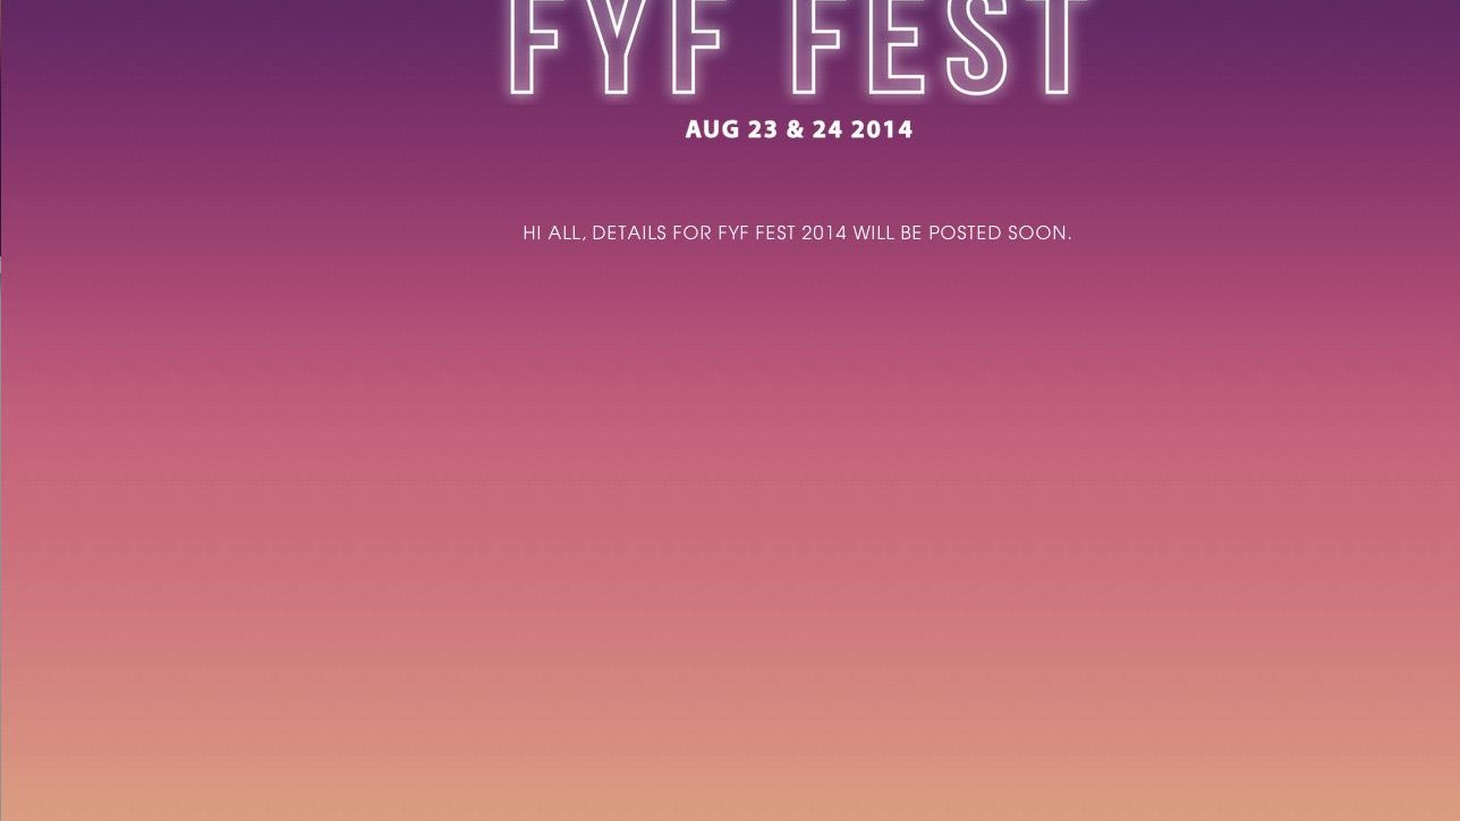 Sean Carlson, founder of FYF Festival, announces this year's lineup on Morning Becomes Eclectic and spins some of the event's finest performers in the 10 o'clock hour.